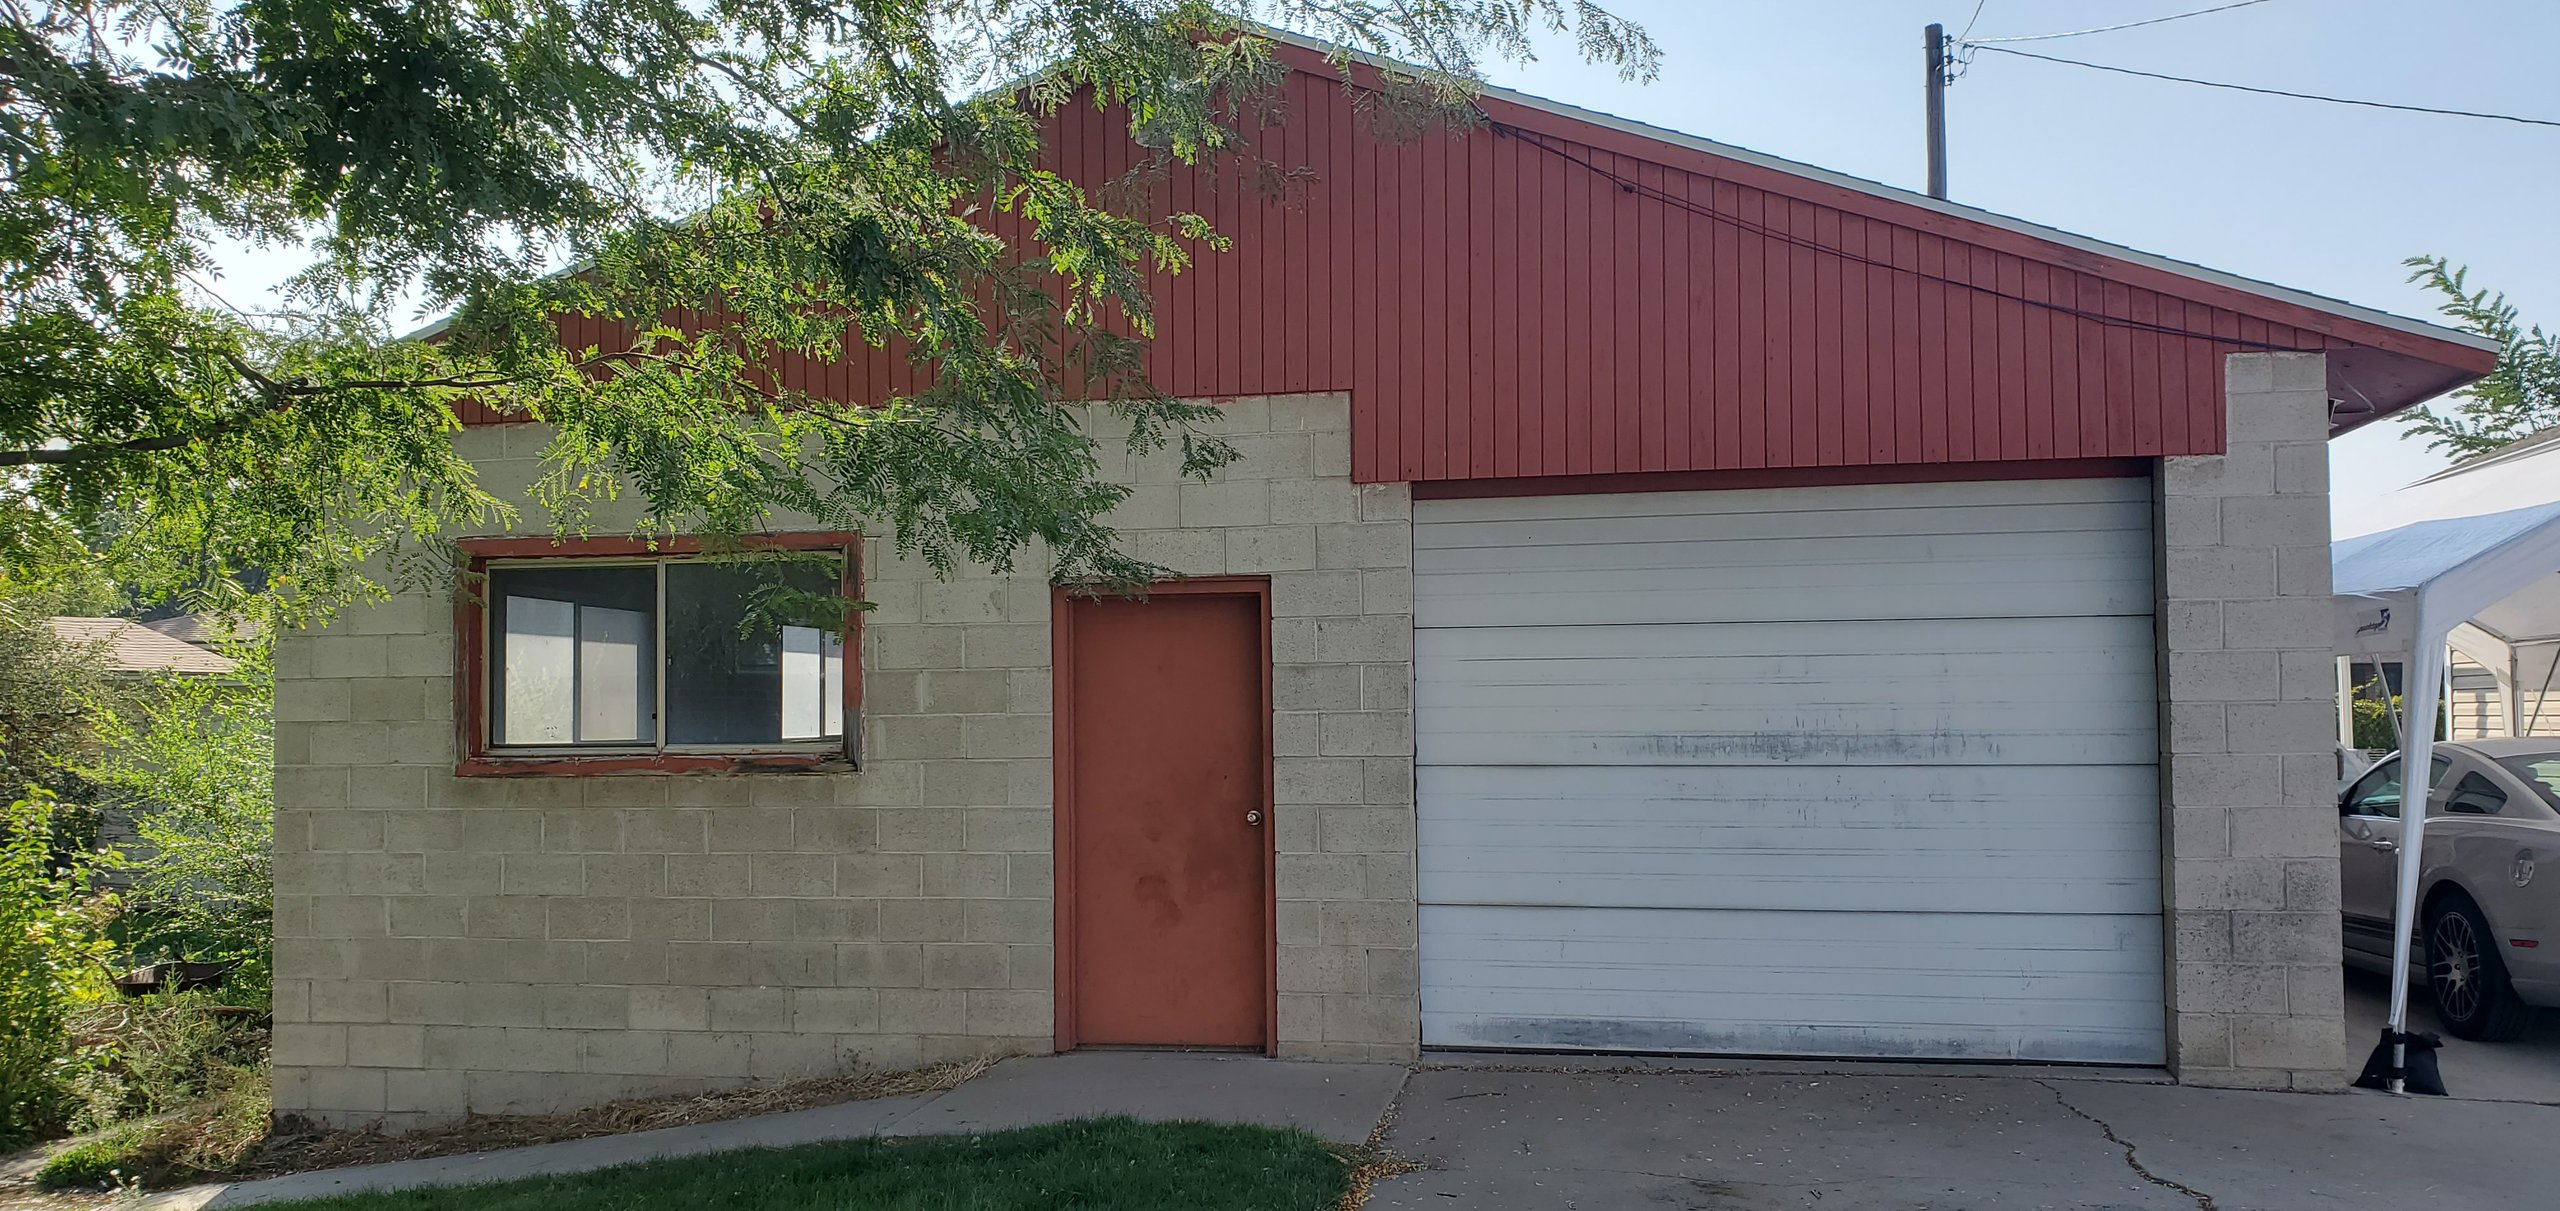 37x26 Garage self storage unit